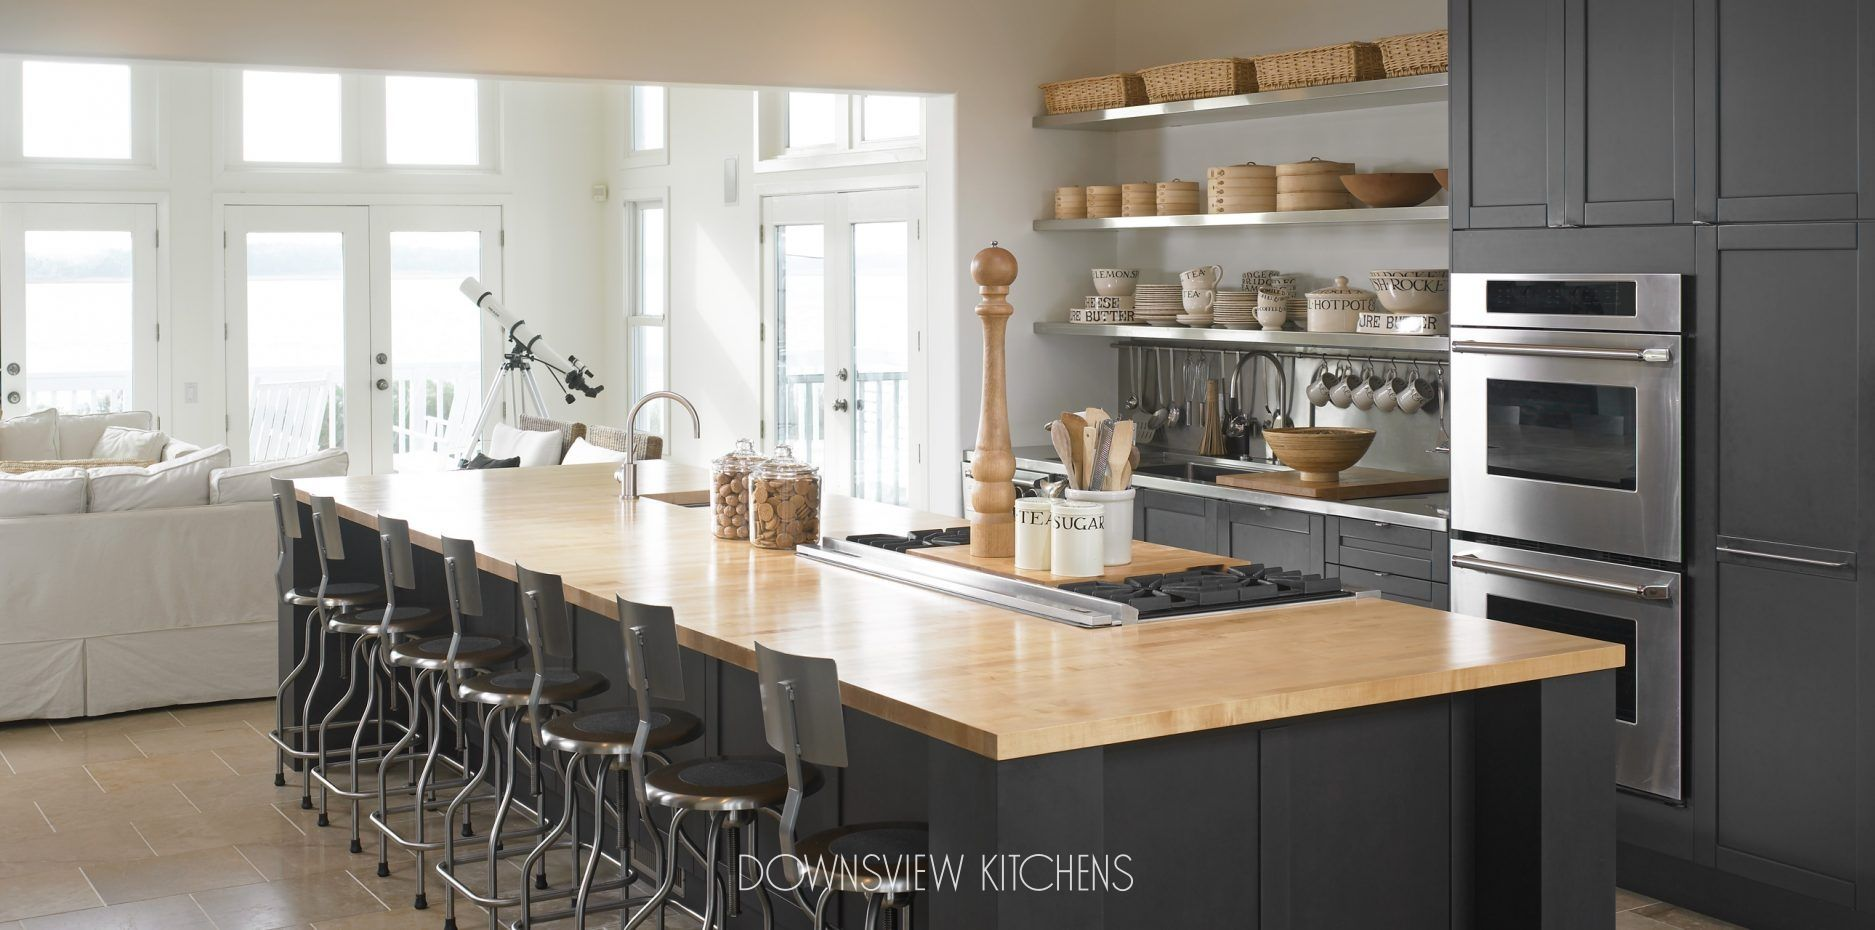 SEASHORE RETREAT   Downsview Kitchens And Fine Custom Cabinetry    Manufacturers Of Custom Kitchen Cabinets